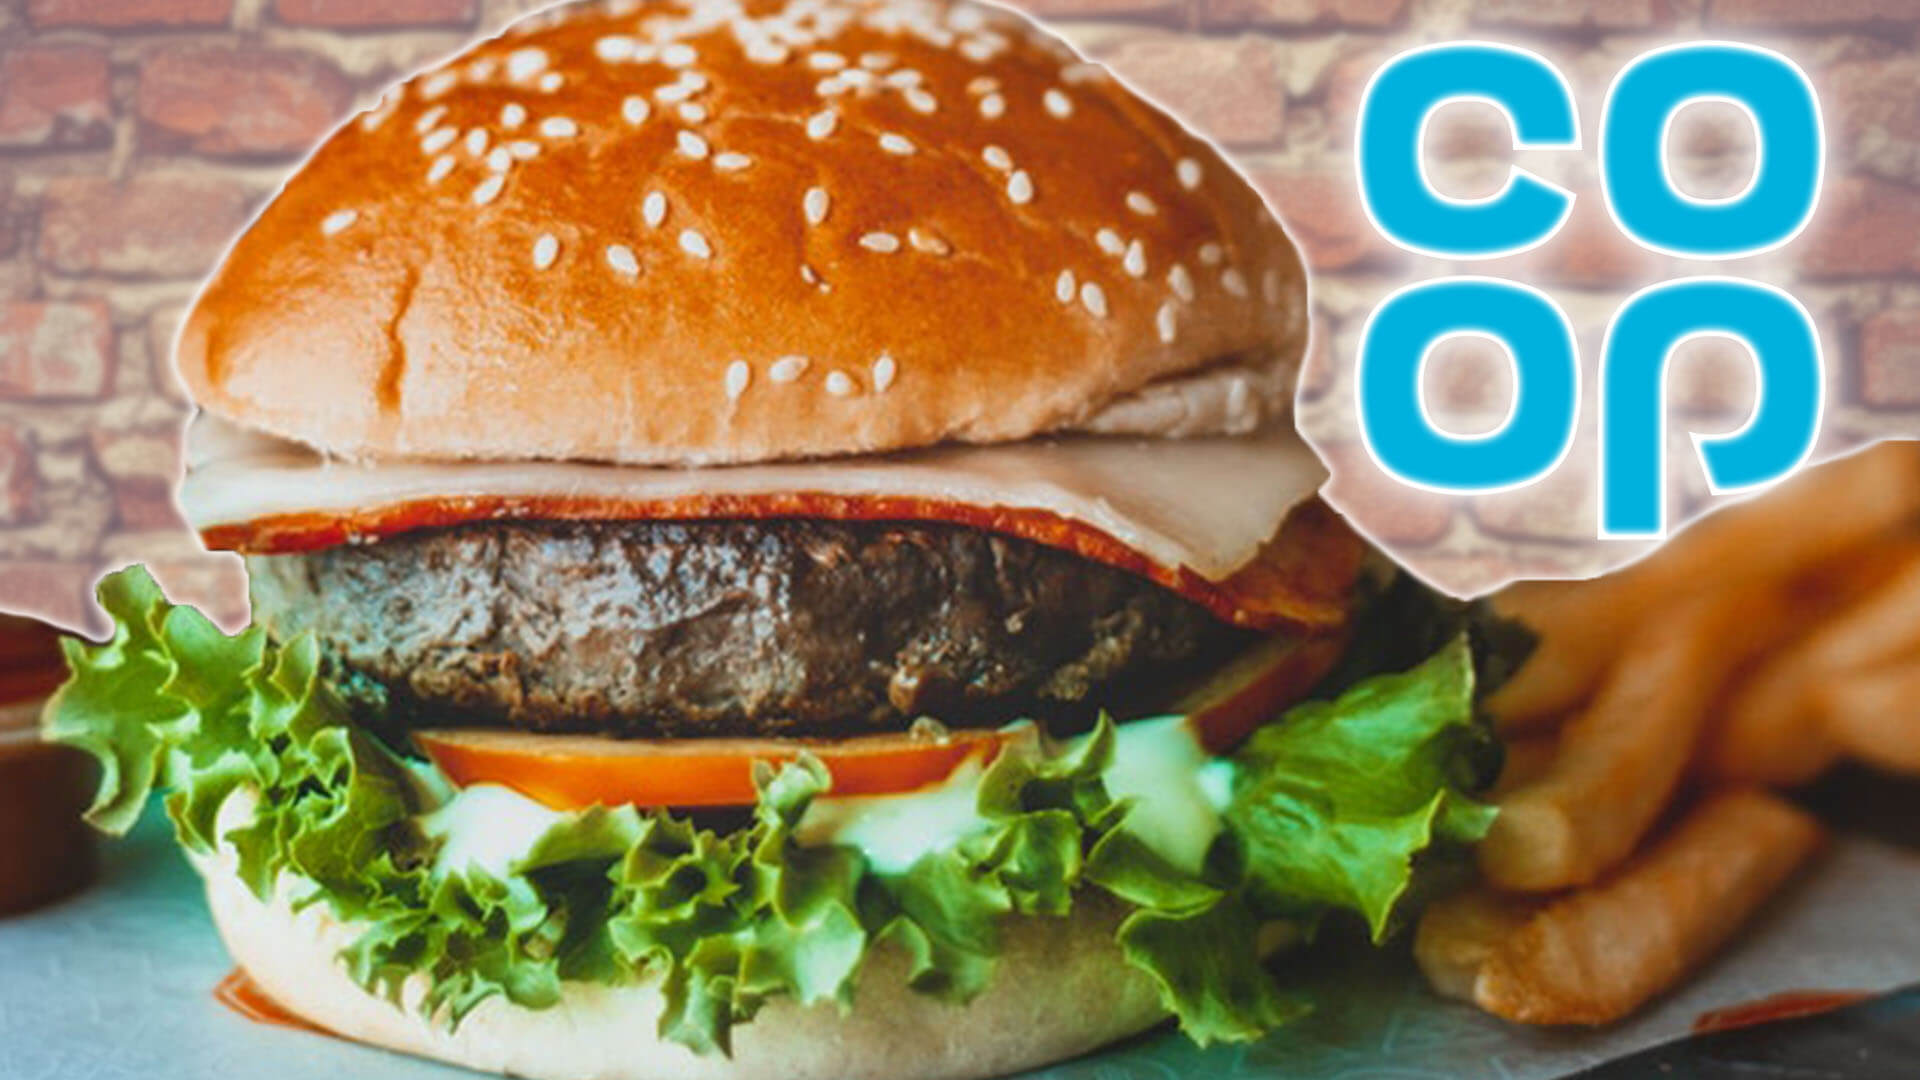 These 'Bleeding' Vegan Burgers at Co-Op Stores Are Incredible